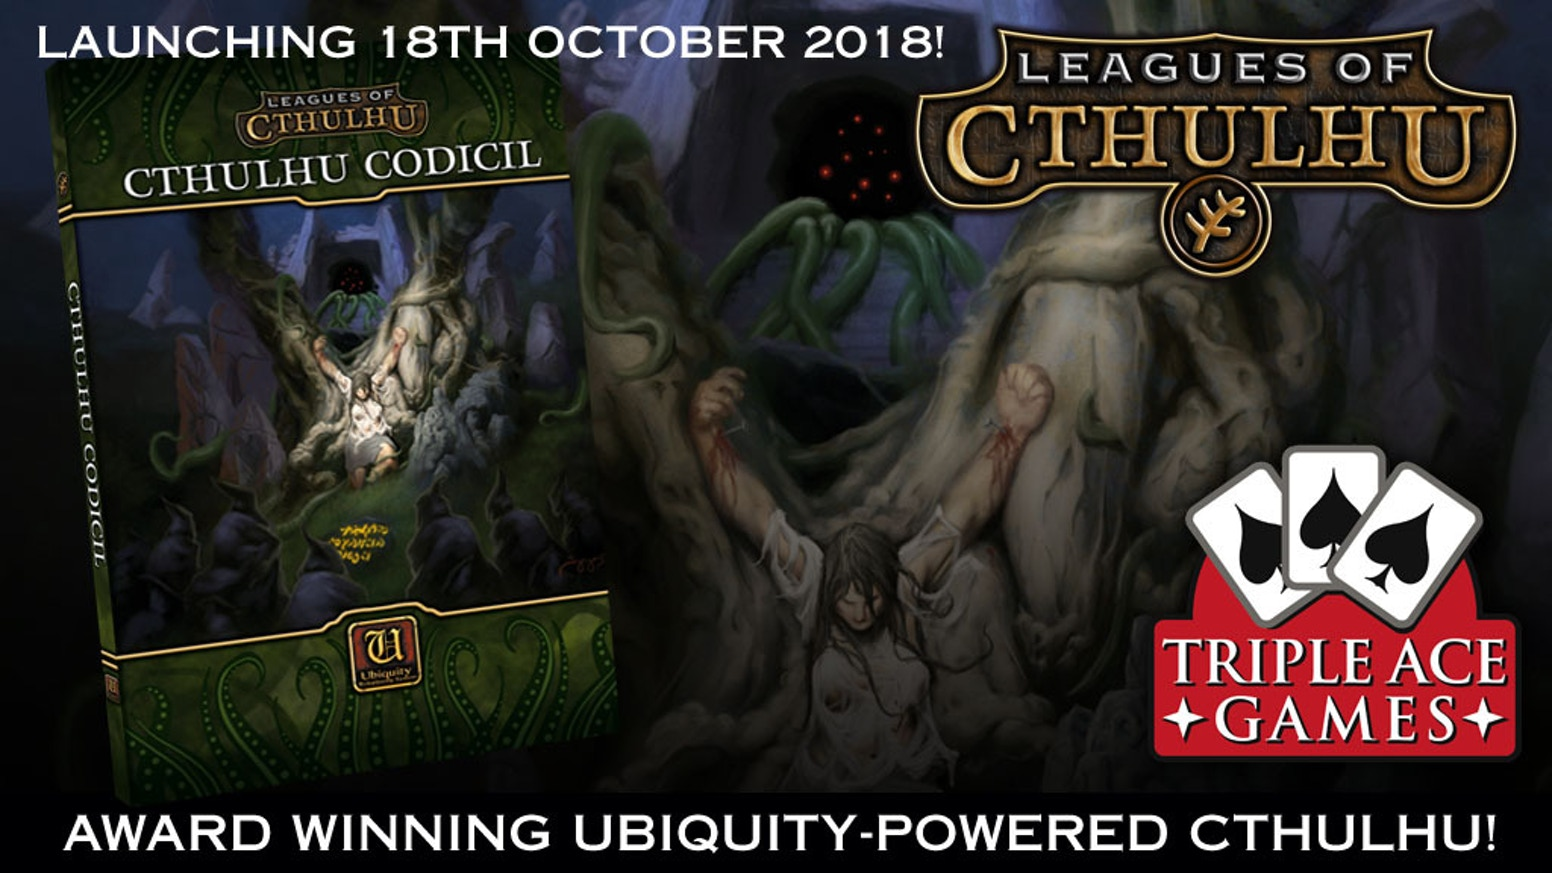 More Mythos and madness from the producers of Leagues of Cthulhu, the Ubiquity-powered RPG of Victorian Lovecraft's Mythos.